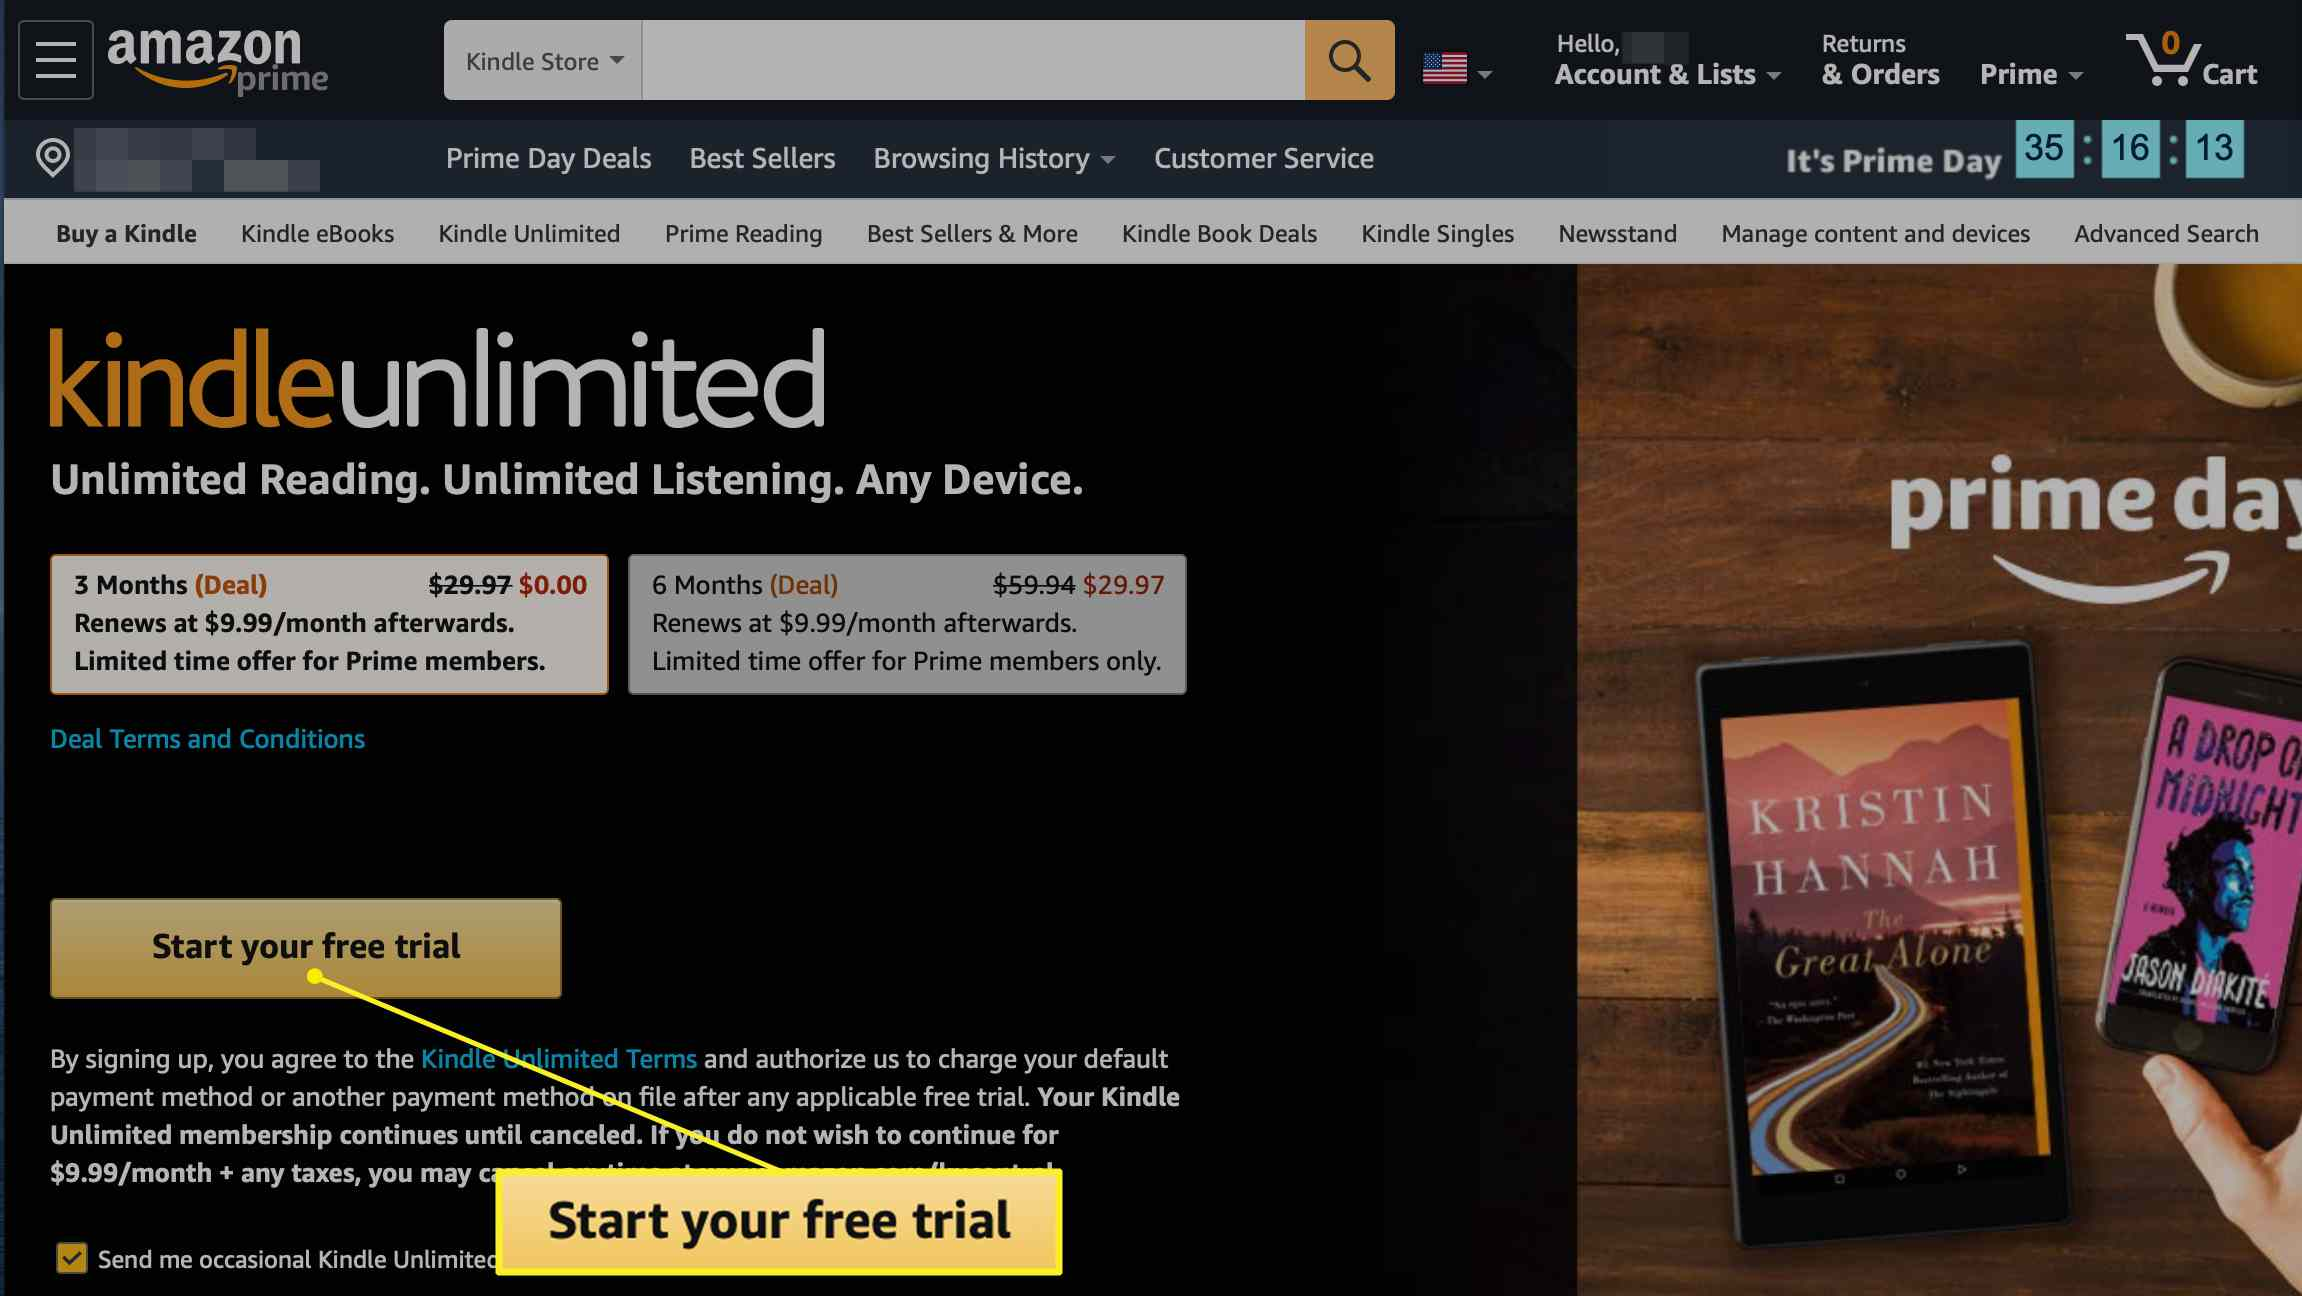 Start your free trial button on kindle unlimited screen